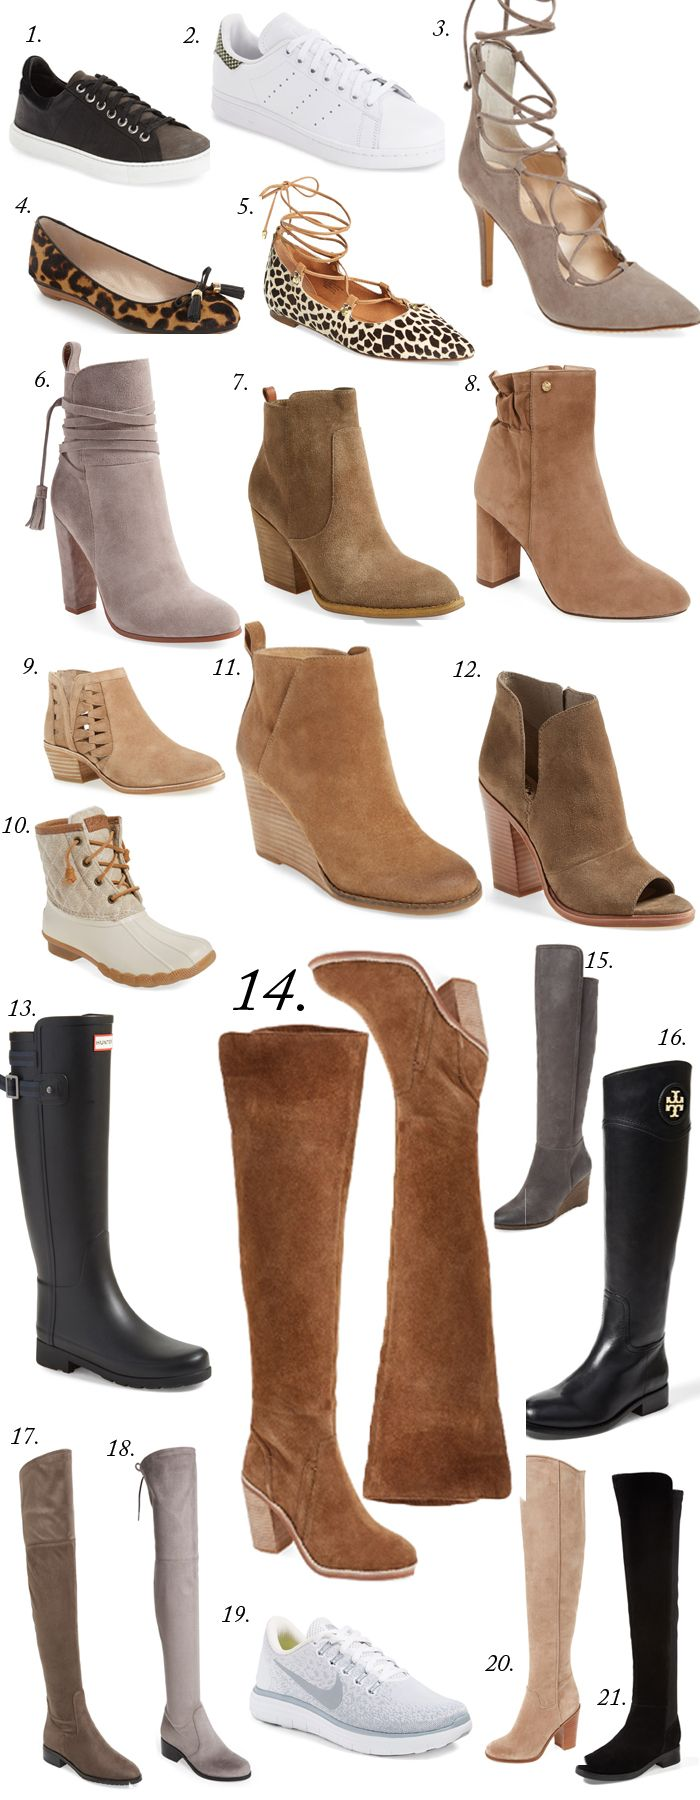 Nordstrom Anniversary Sale 2016 IS LIVE!